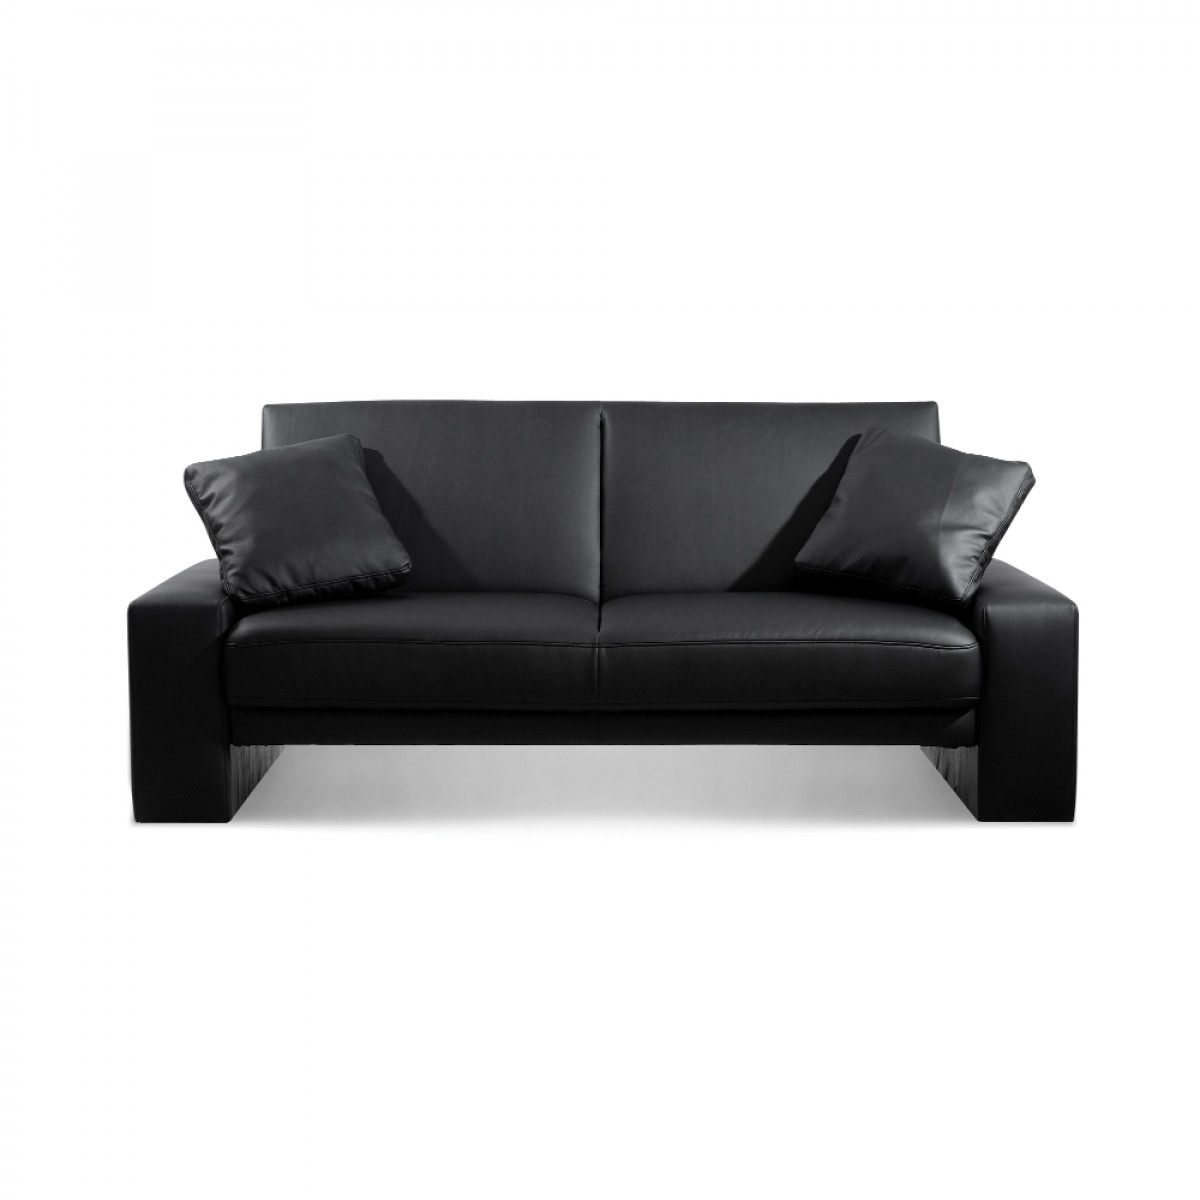 Supra Black Faux Leather Sofa Bed